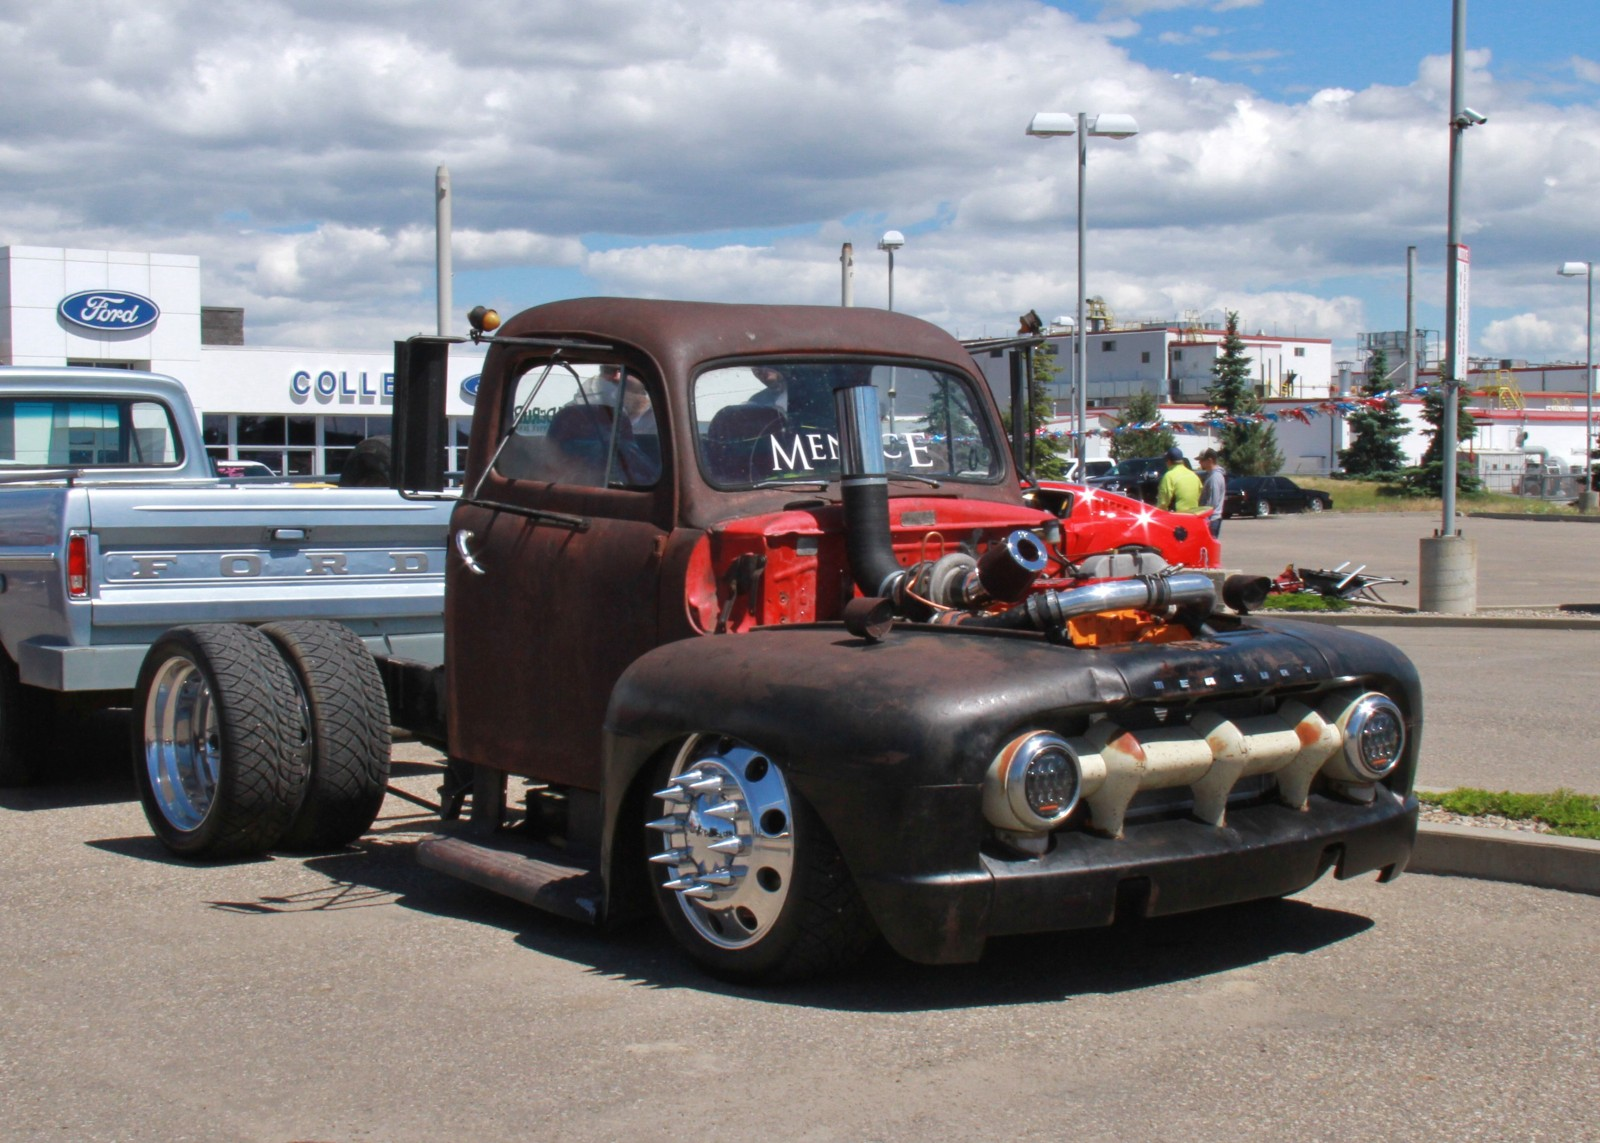 3 Cylinder Air Cooled Diesel 1950 Ford Hot Rod Truck